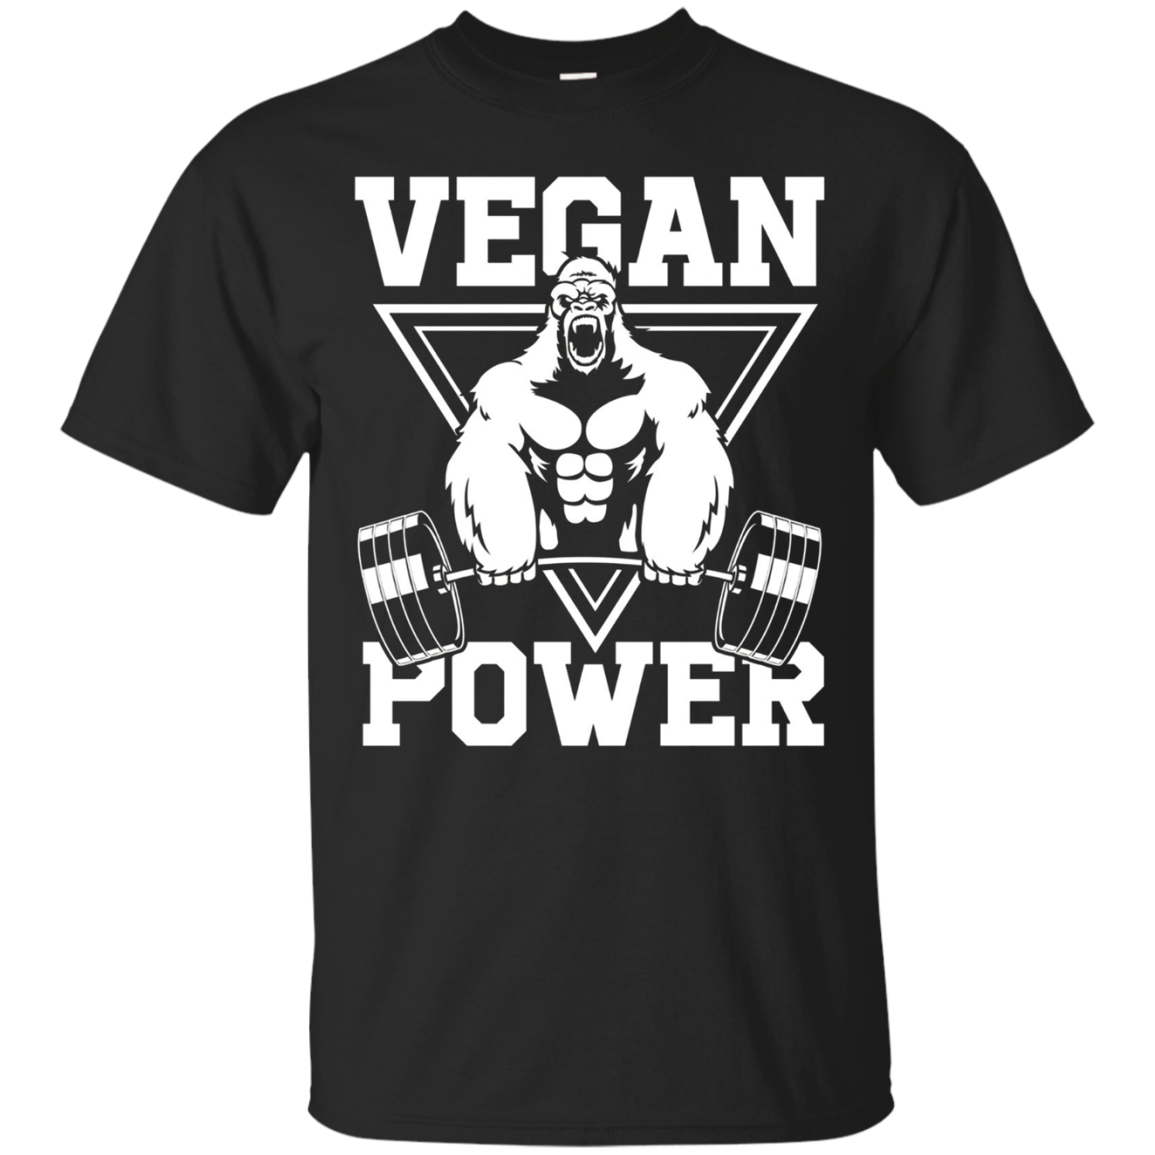 Vegan Power Workout Shirt Muscle Gorilla Gym Bodybuilding